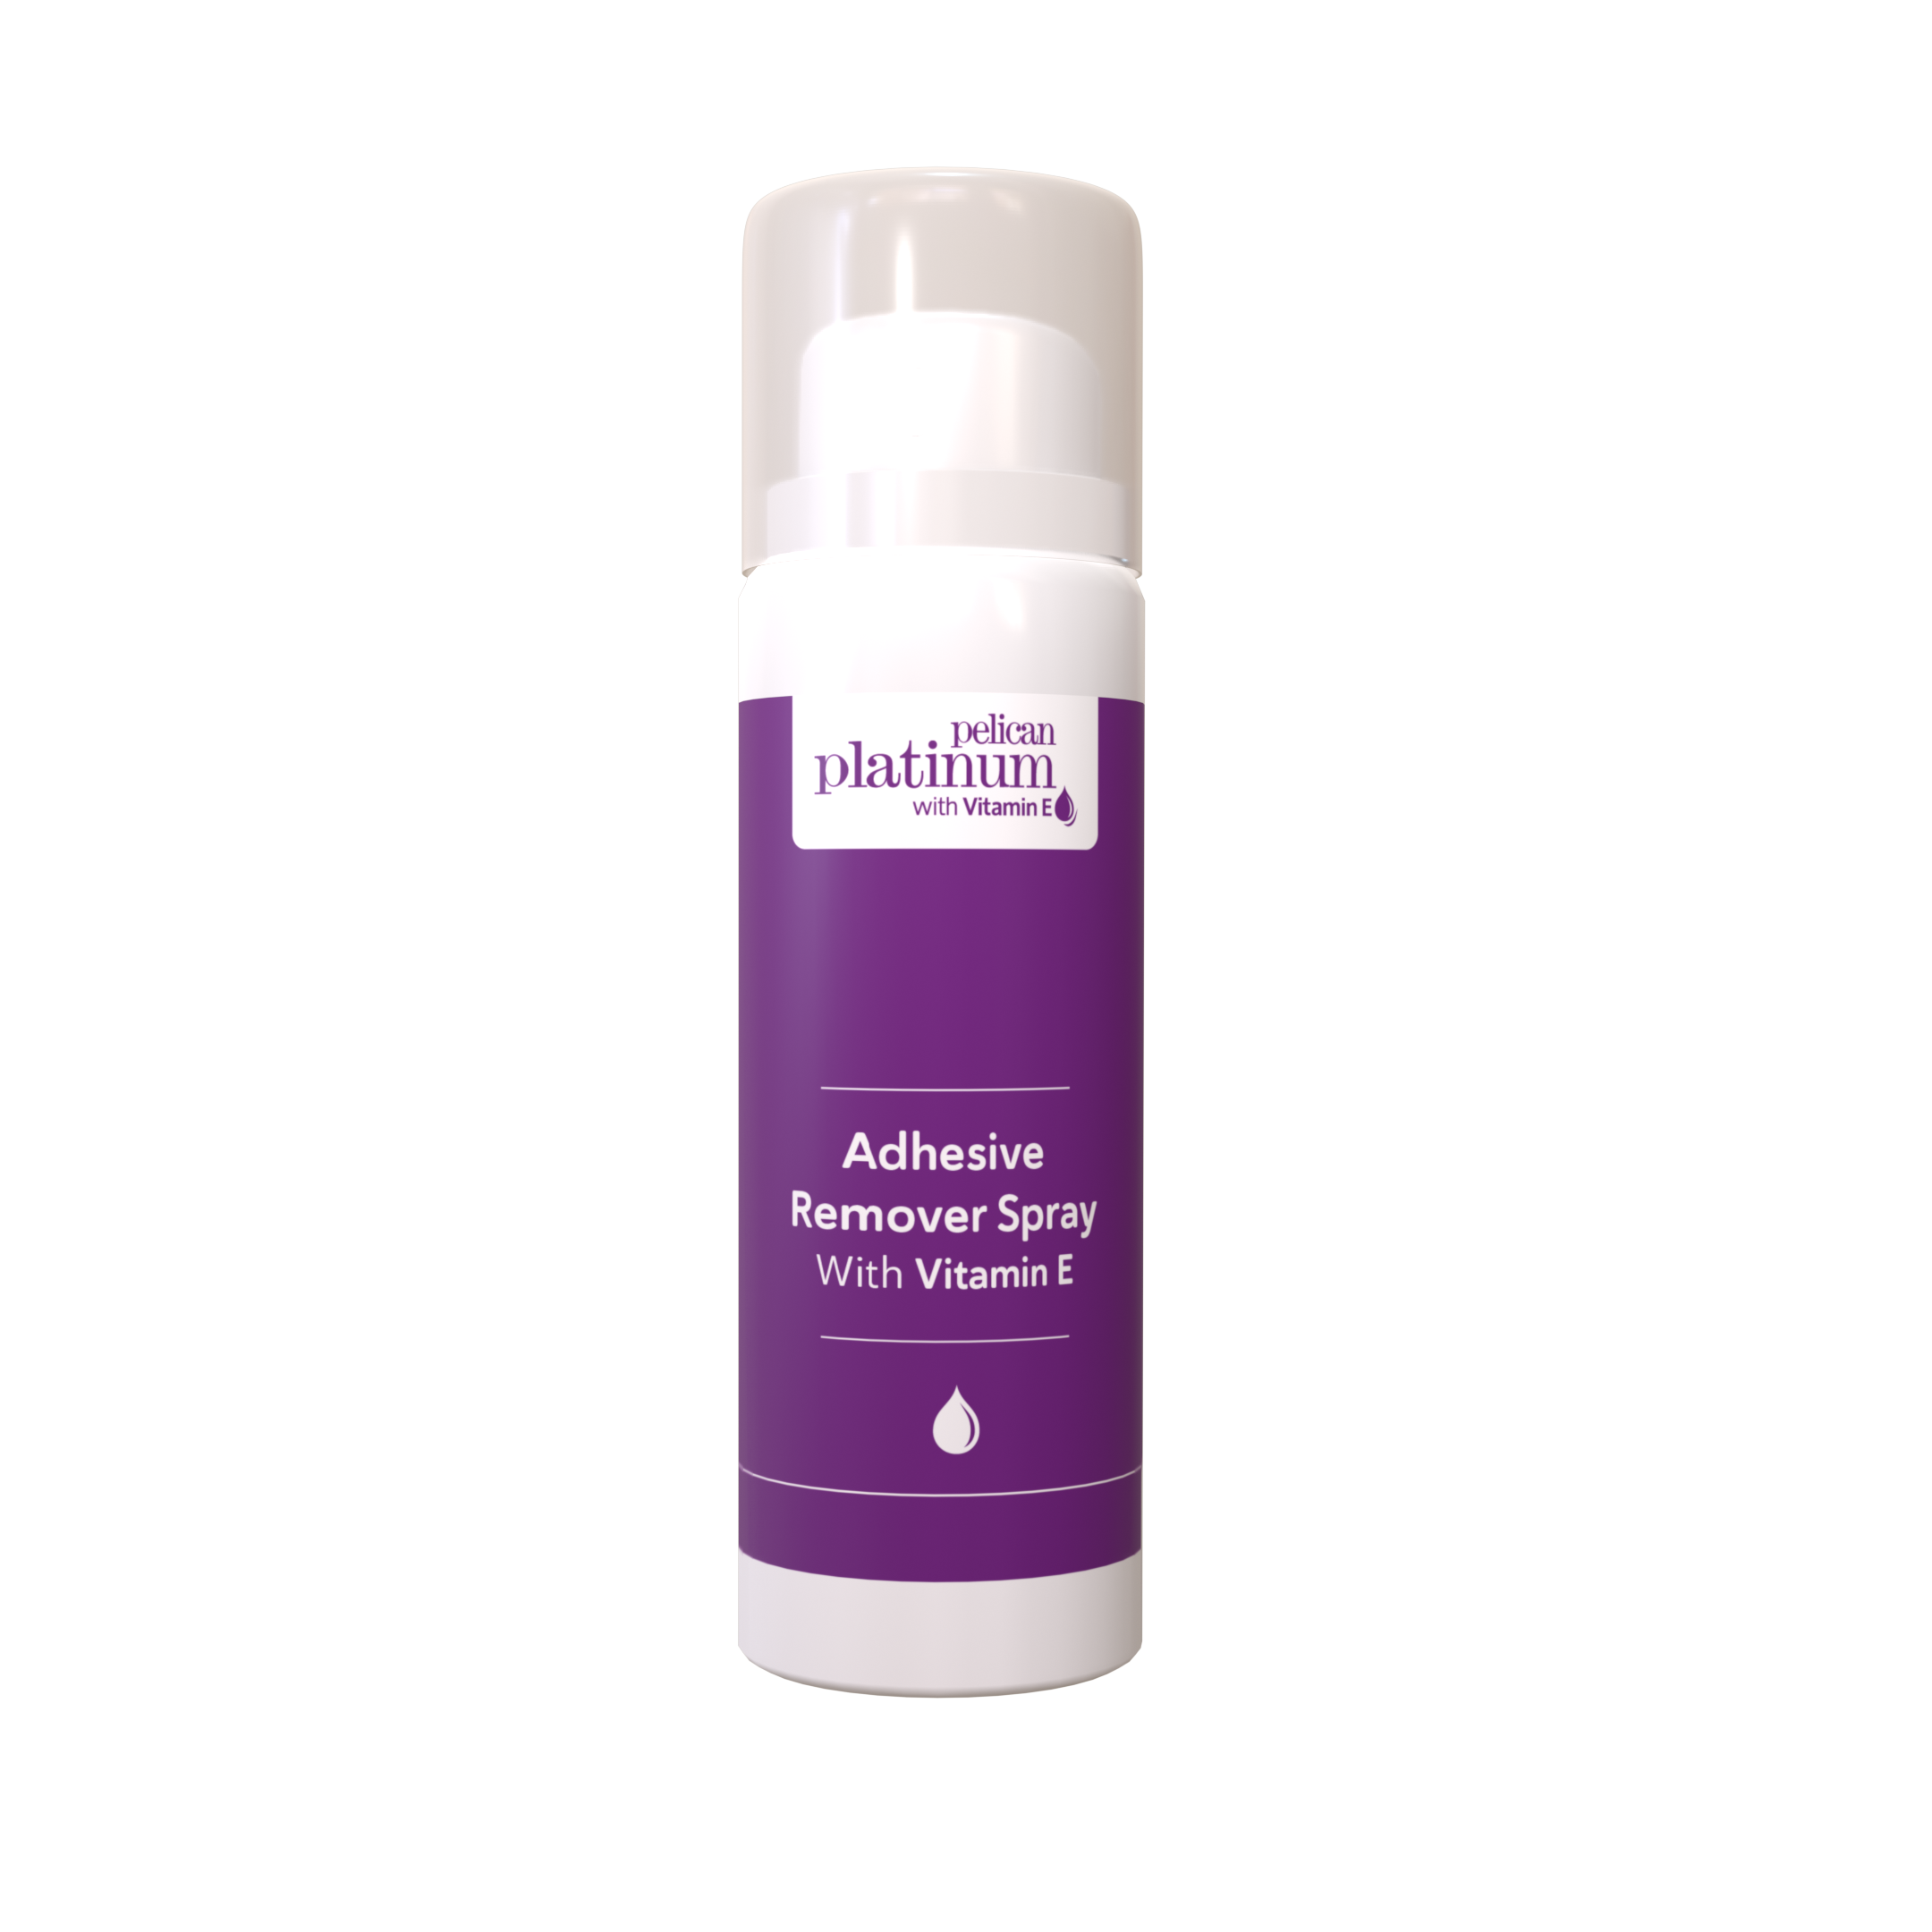 Platinum with Vitamin E Adhesive Remover Spray